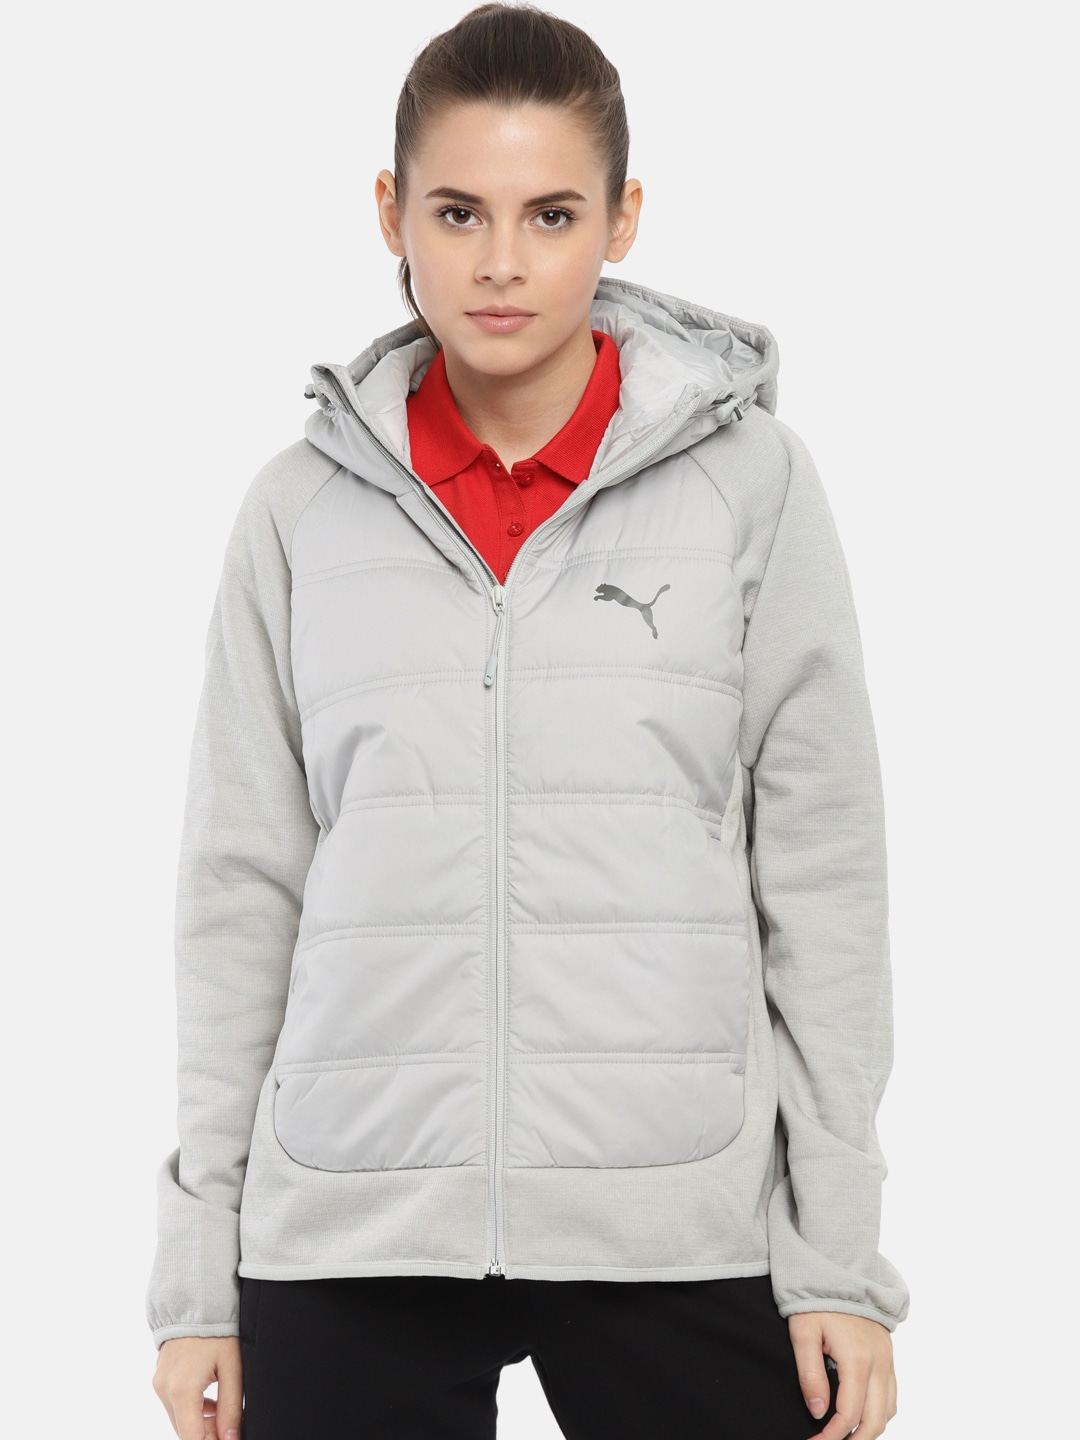 a5ec135070c6 Puma Jacket - Buy original Puma Jackets Online in India